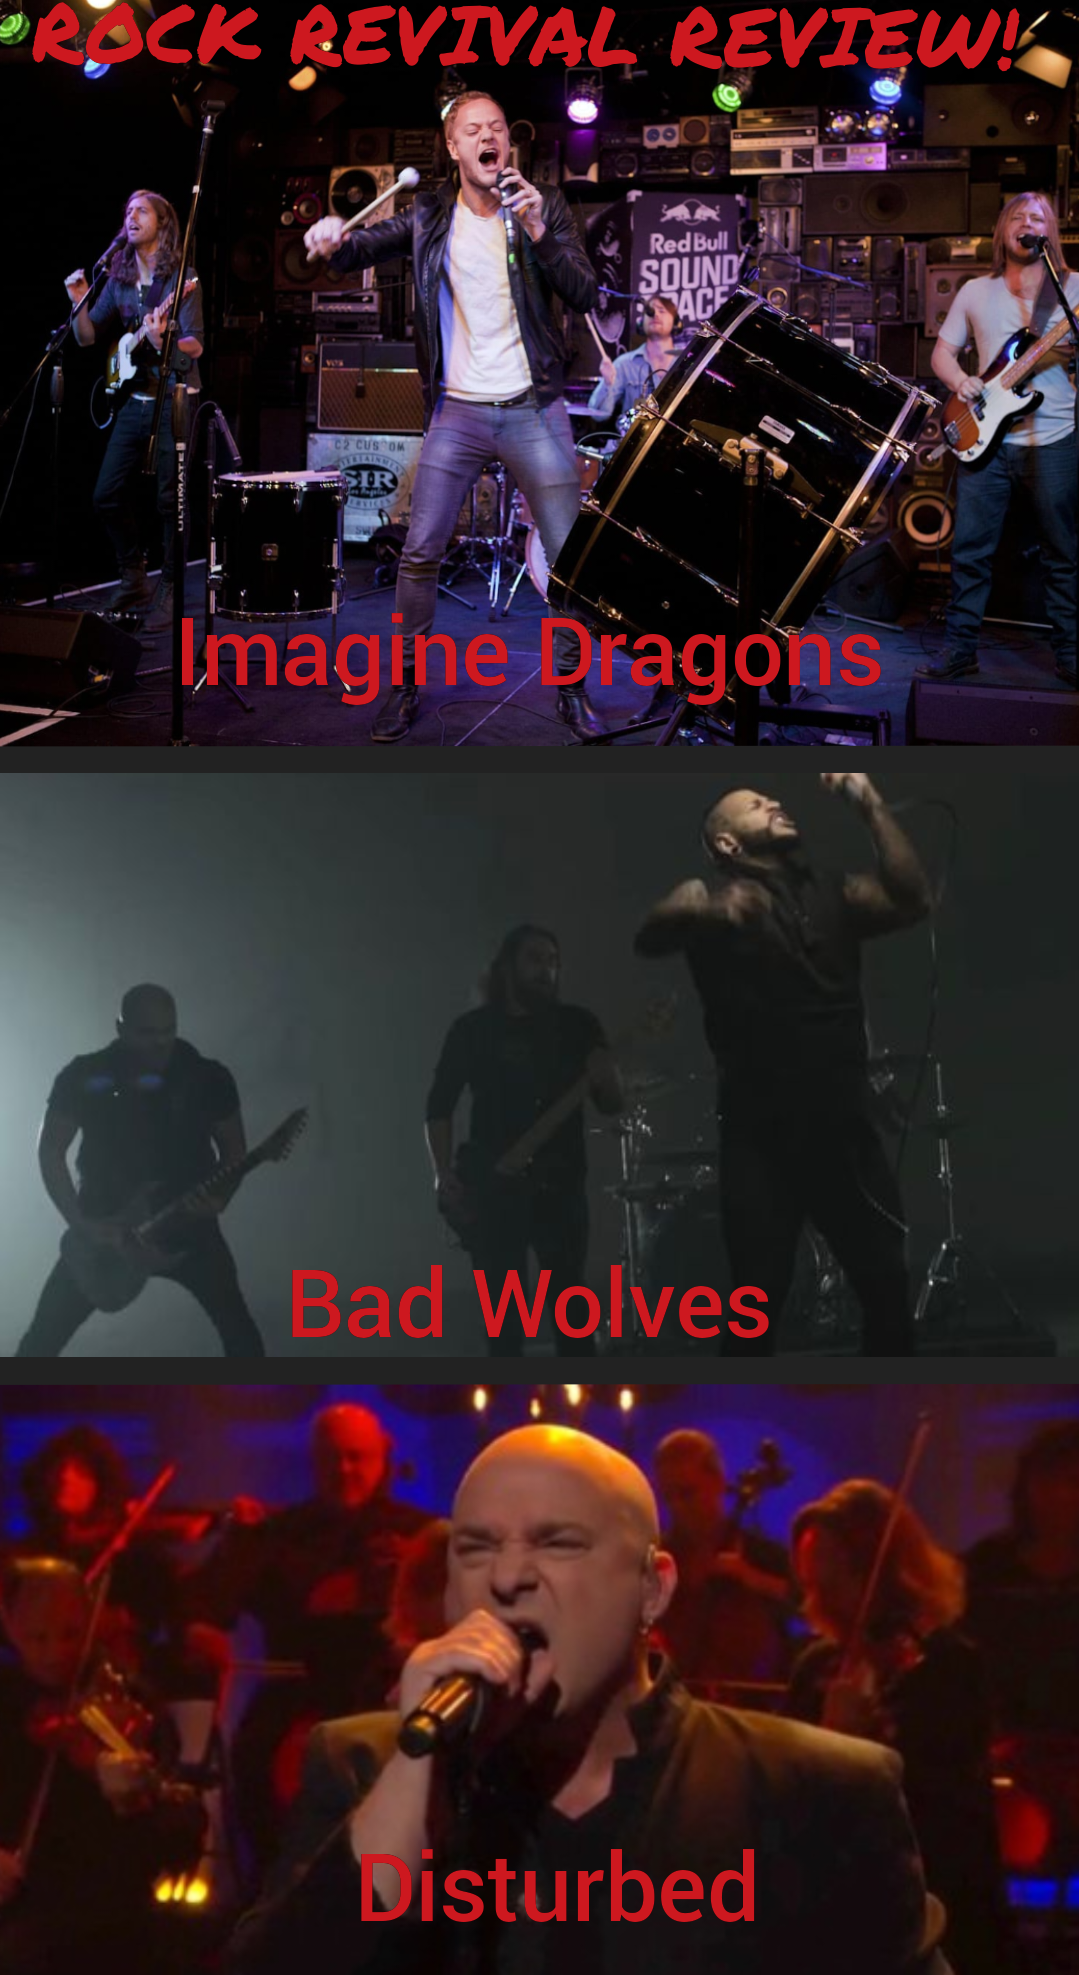 Rock Revival Review: Imagine Dragons, Bad Wolves & Disturbed